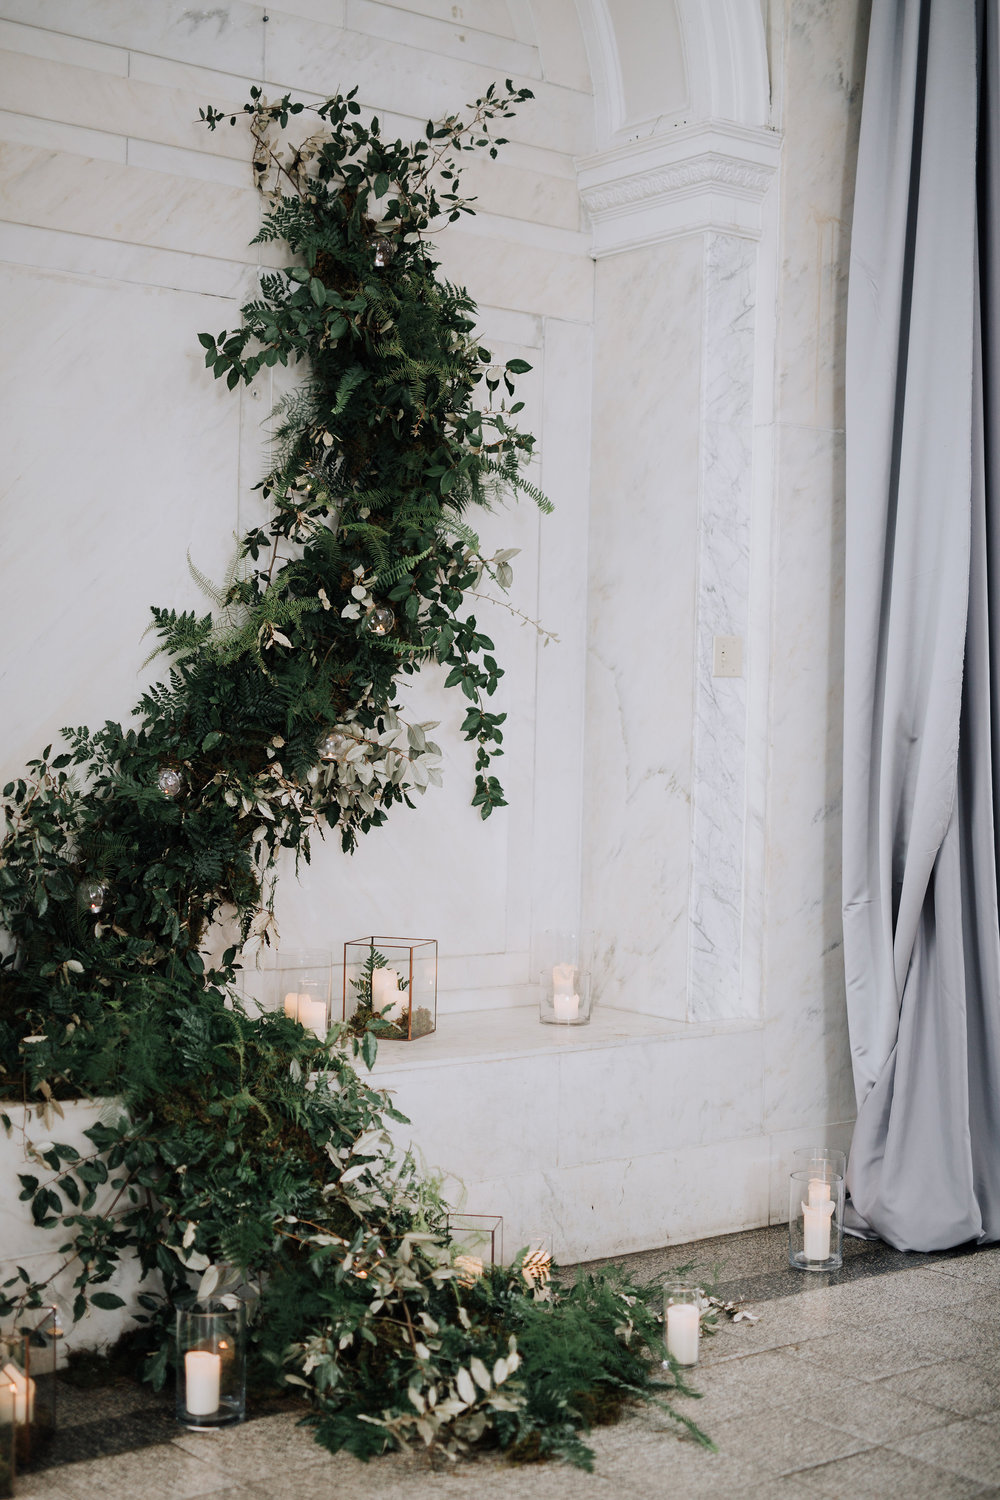 This was in 2016 at the Old Decatur Courthouse. The client wanted to bring the outdoors in so we decided to create a climbing greenery wall for their ceremony backdrop. We actually placed a 12 foot ladder inside of this alcove. Don't you worry about the mechanics behind all of it, I can promise you though it wasn't going anywhere. Image by Twin Hearts Photography.